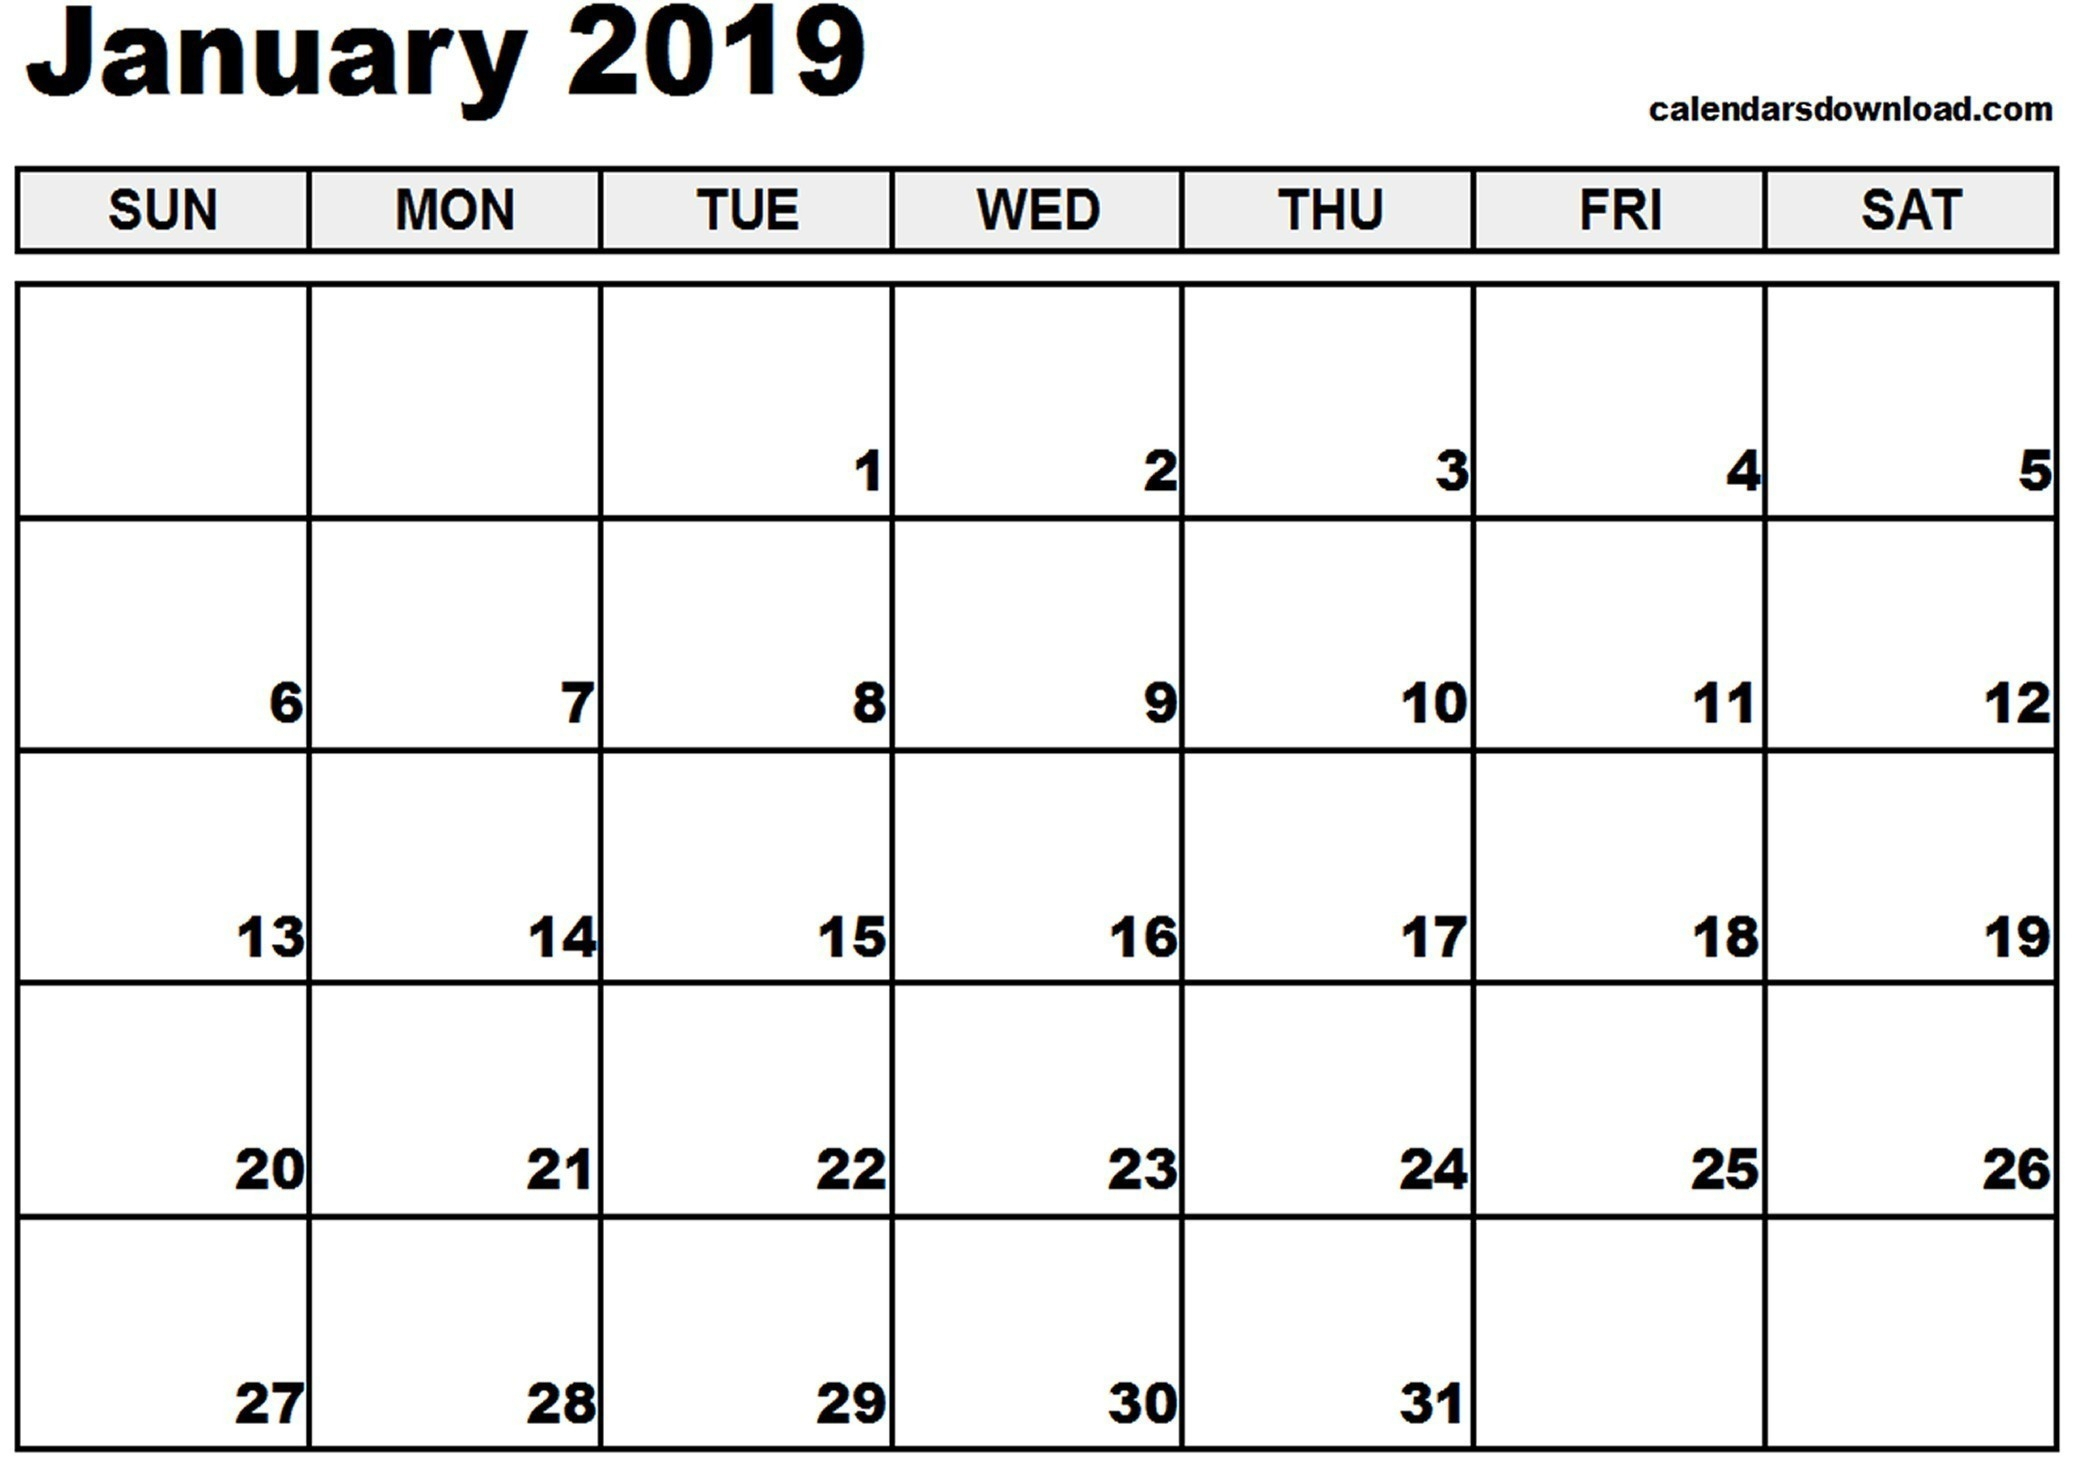 Nanakshahi Calendar 2020 January | Calendar Template Printable pertaining to Khalsa Heera Jantri 2020 January